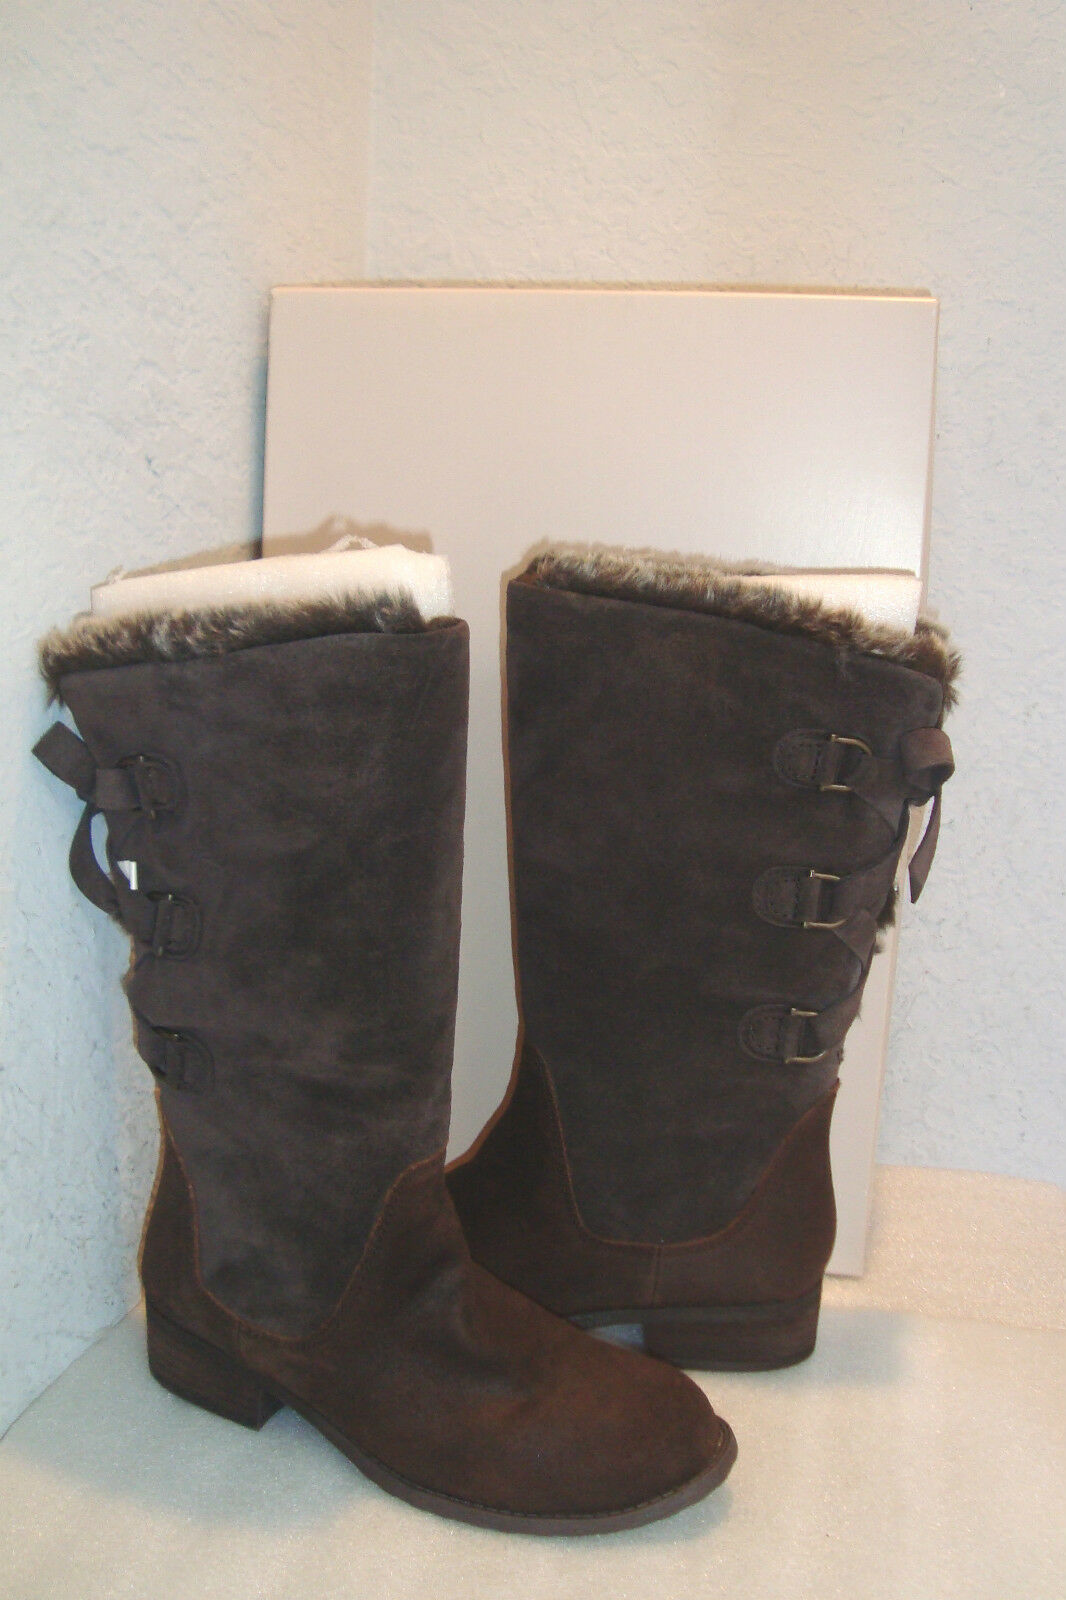 BCBGeneration BCBG Womens NWB Miana Glaze Brown Boots Shoes 7 MED NEW